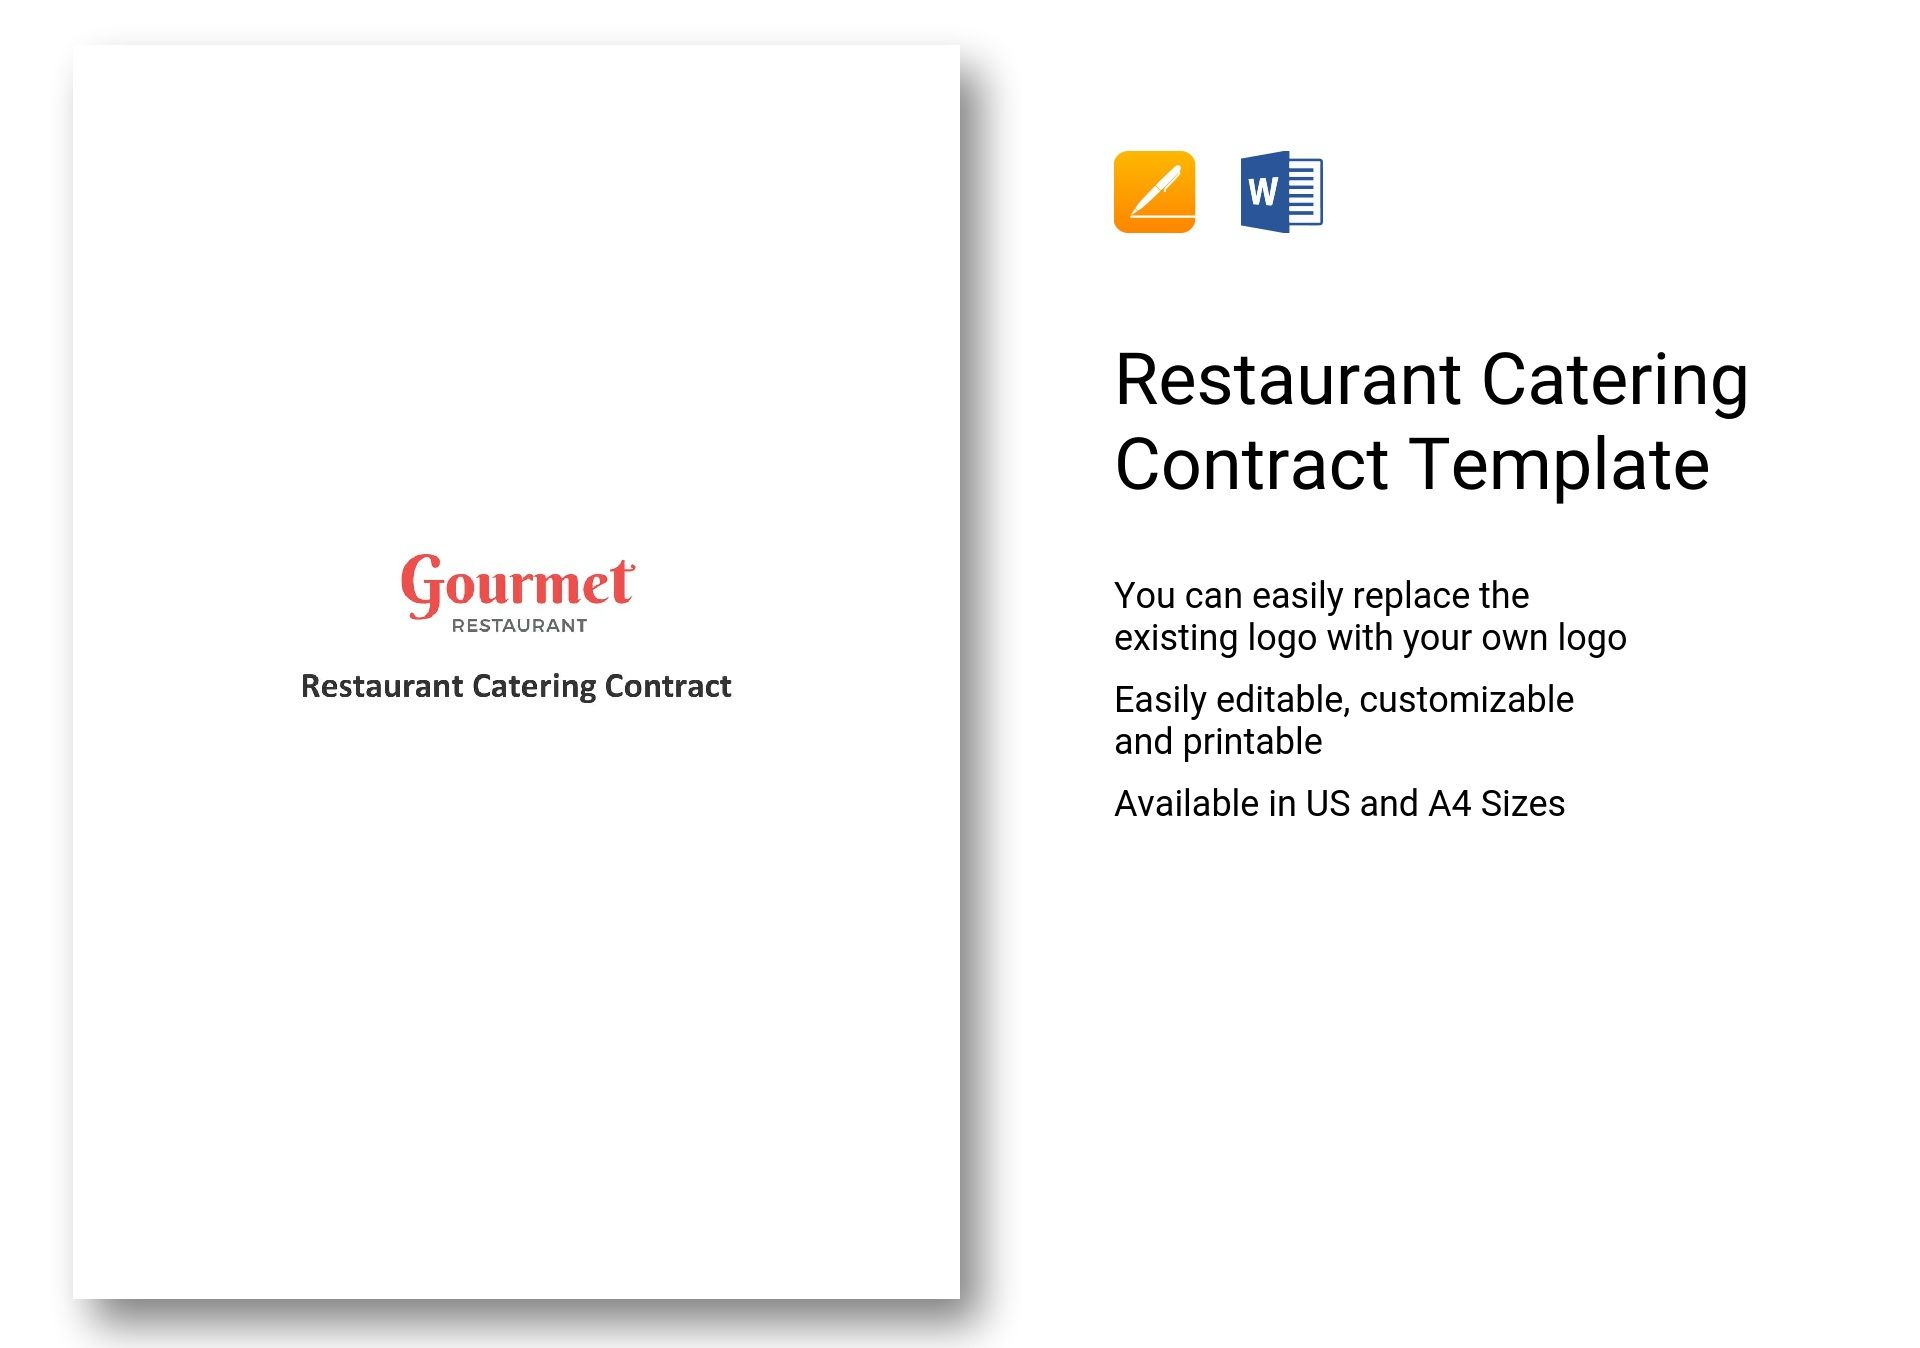 Restaurant Catering Contract